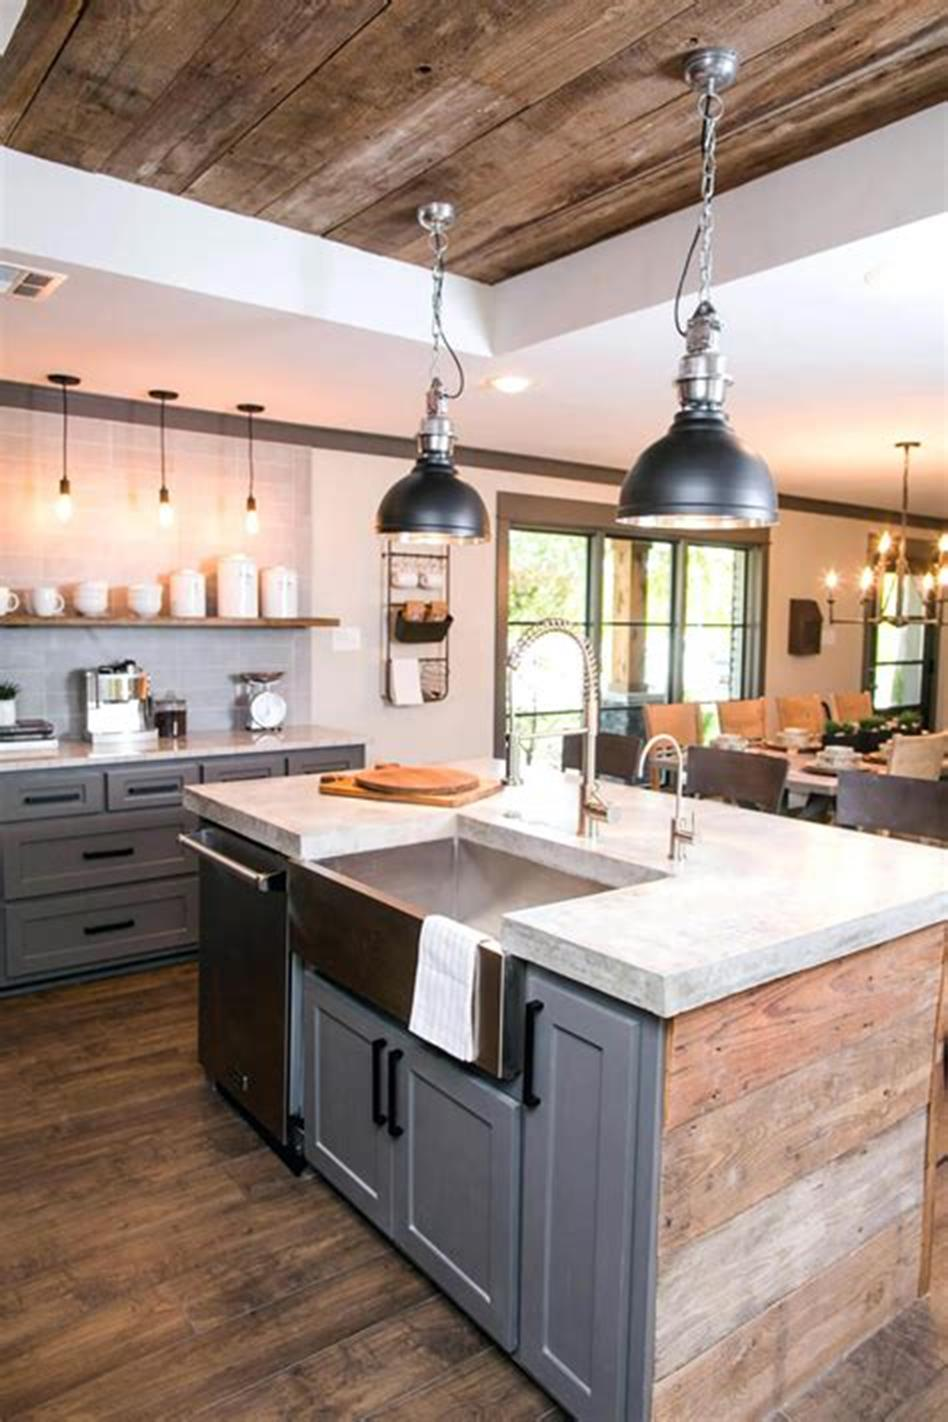 50 Inspiring Farmhouse Style Kitchen Lighting Fixtures Ideas 38